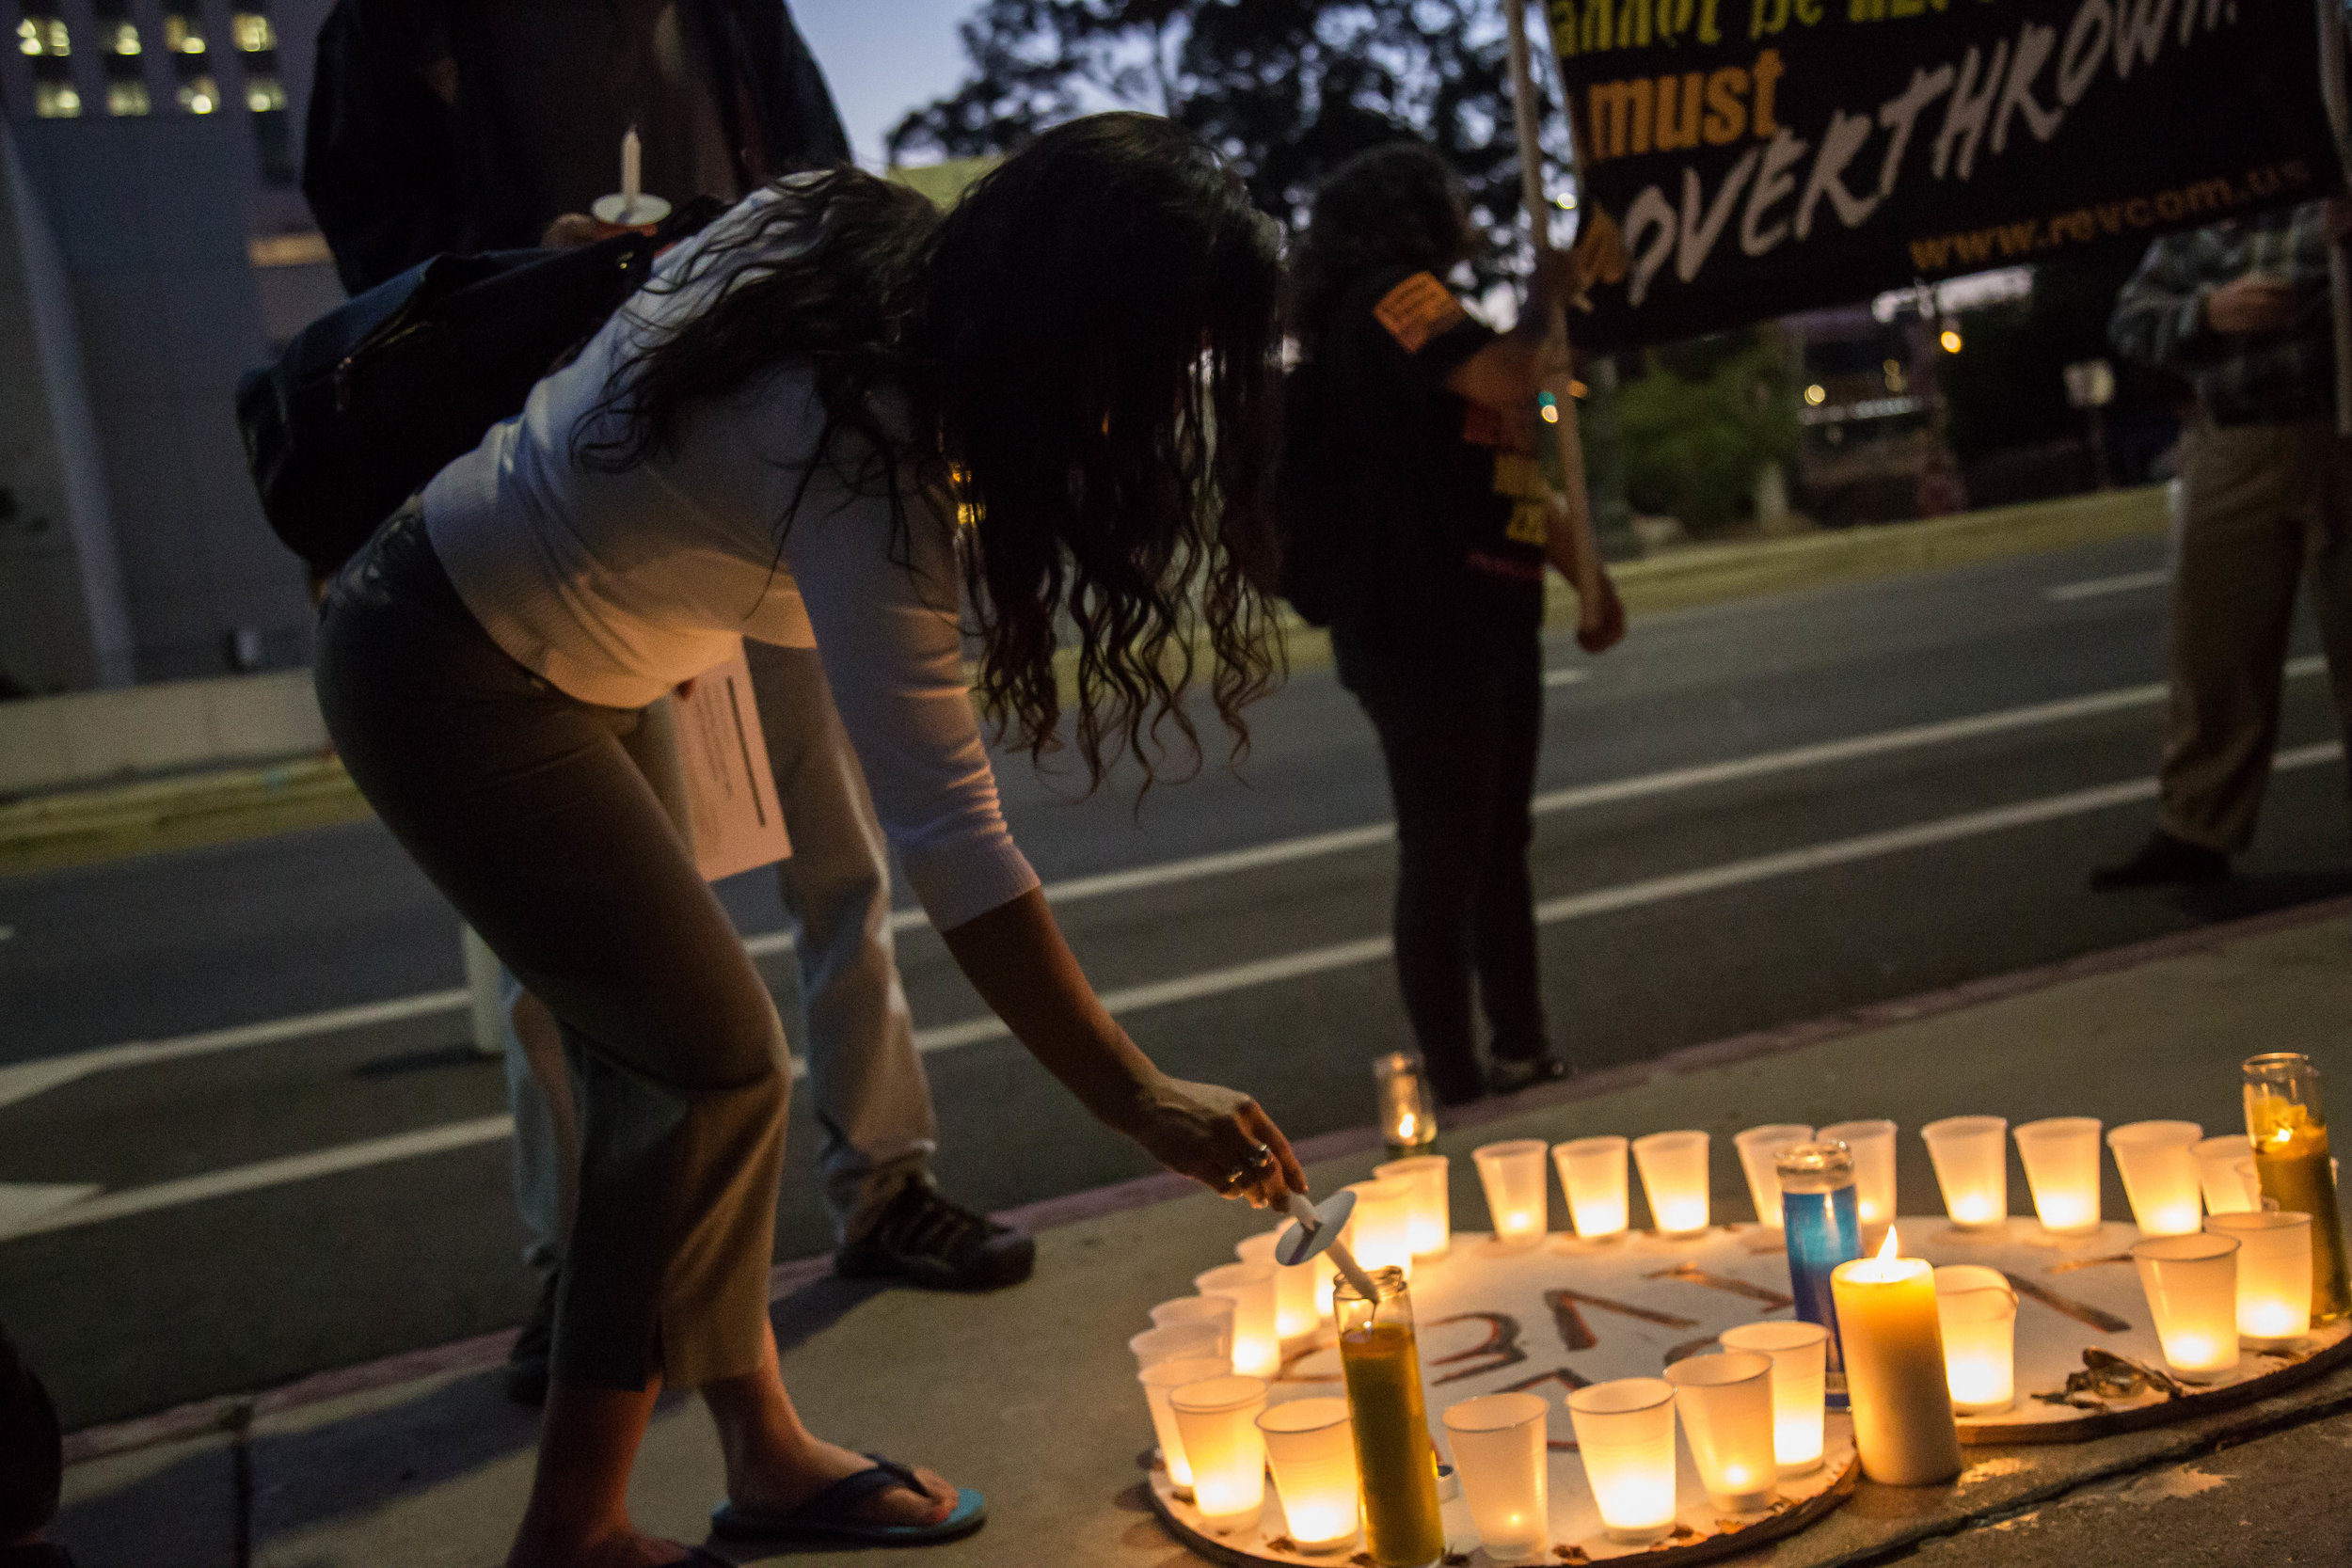 """Participants of """"Justice for Claudia and All kidnapped Indigenous children!"""" lights up their candle to demand justice for Claudia Patricia Gómez González in front of the United States Citizenship and Immigration building in Downtown Los Angeles, California on June 1st, 2018. (Yuki Iwamura/Corsair Contributor)"""